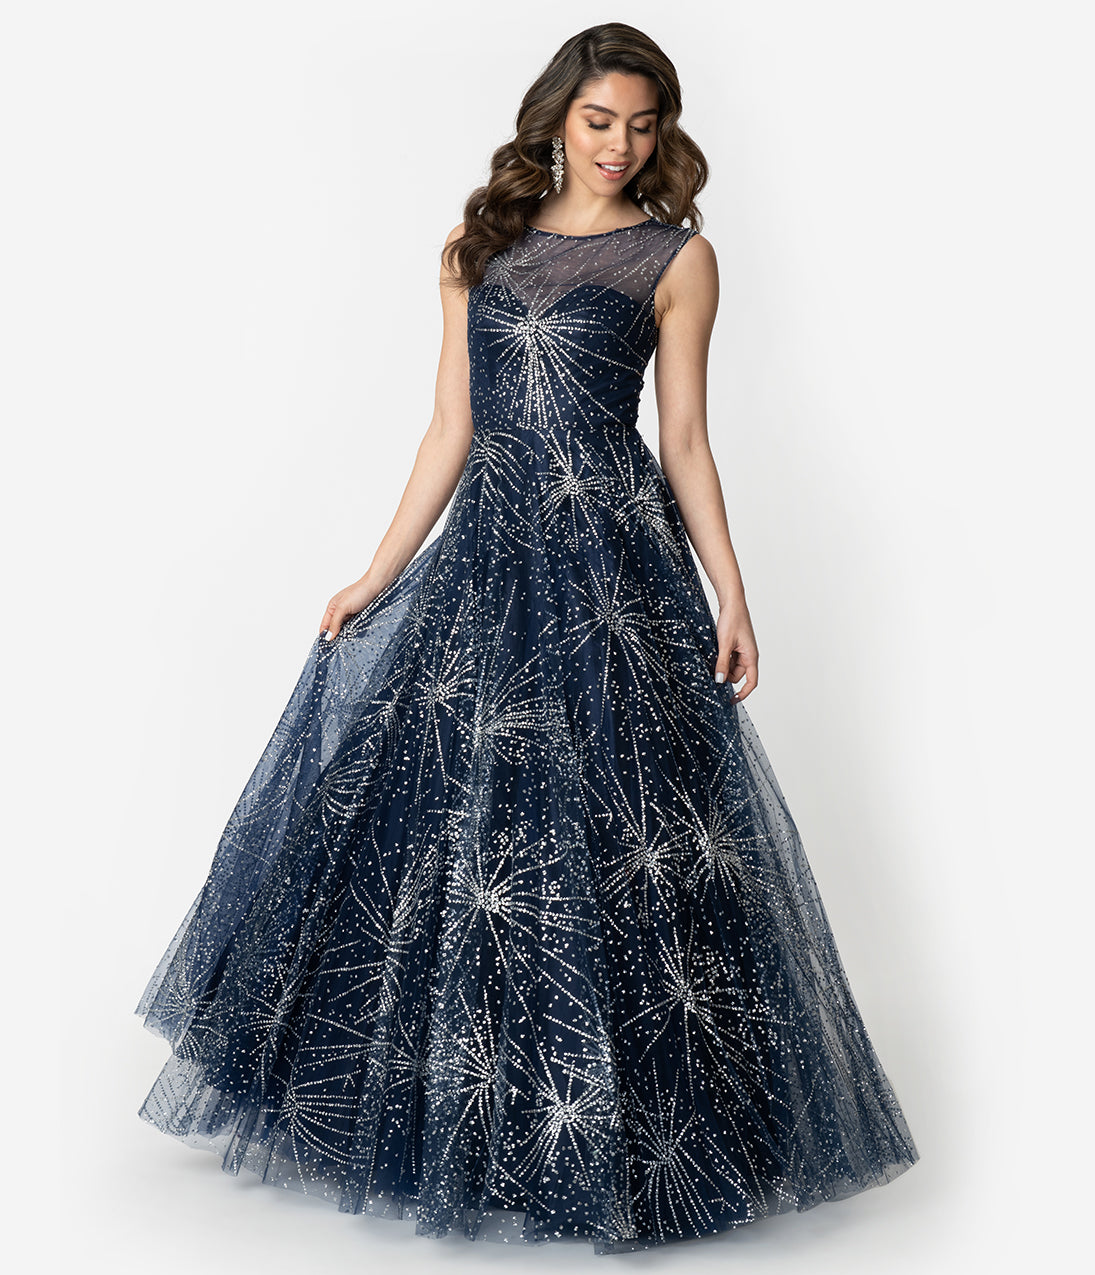 Vintage Evening Dresses and Formal Evening Gowns Navy  Silver Glitter Starburst Sleeveless Ball Gown $220.00 AT vintagedancer.com